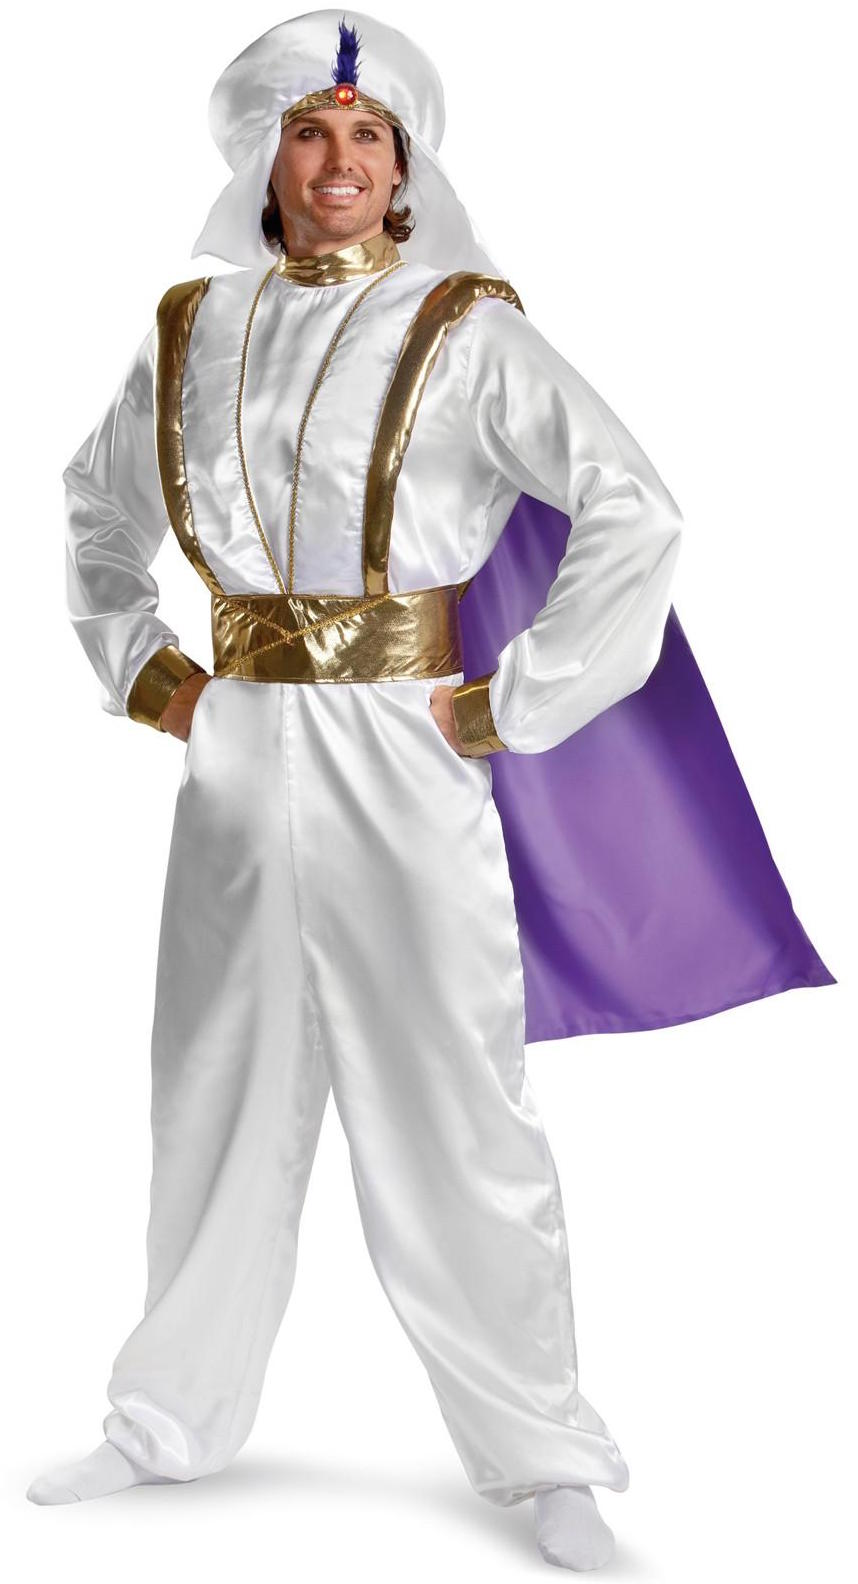 Disney Aladdin Costume